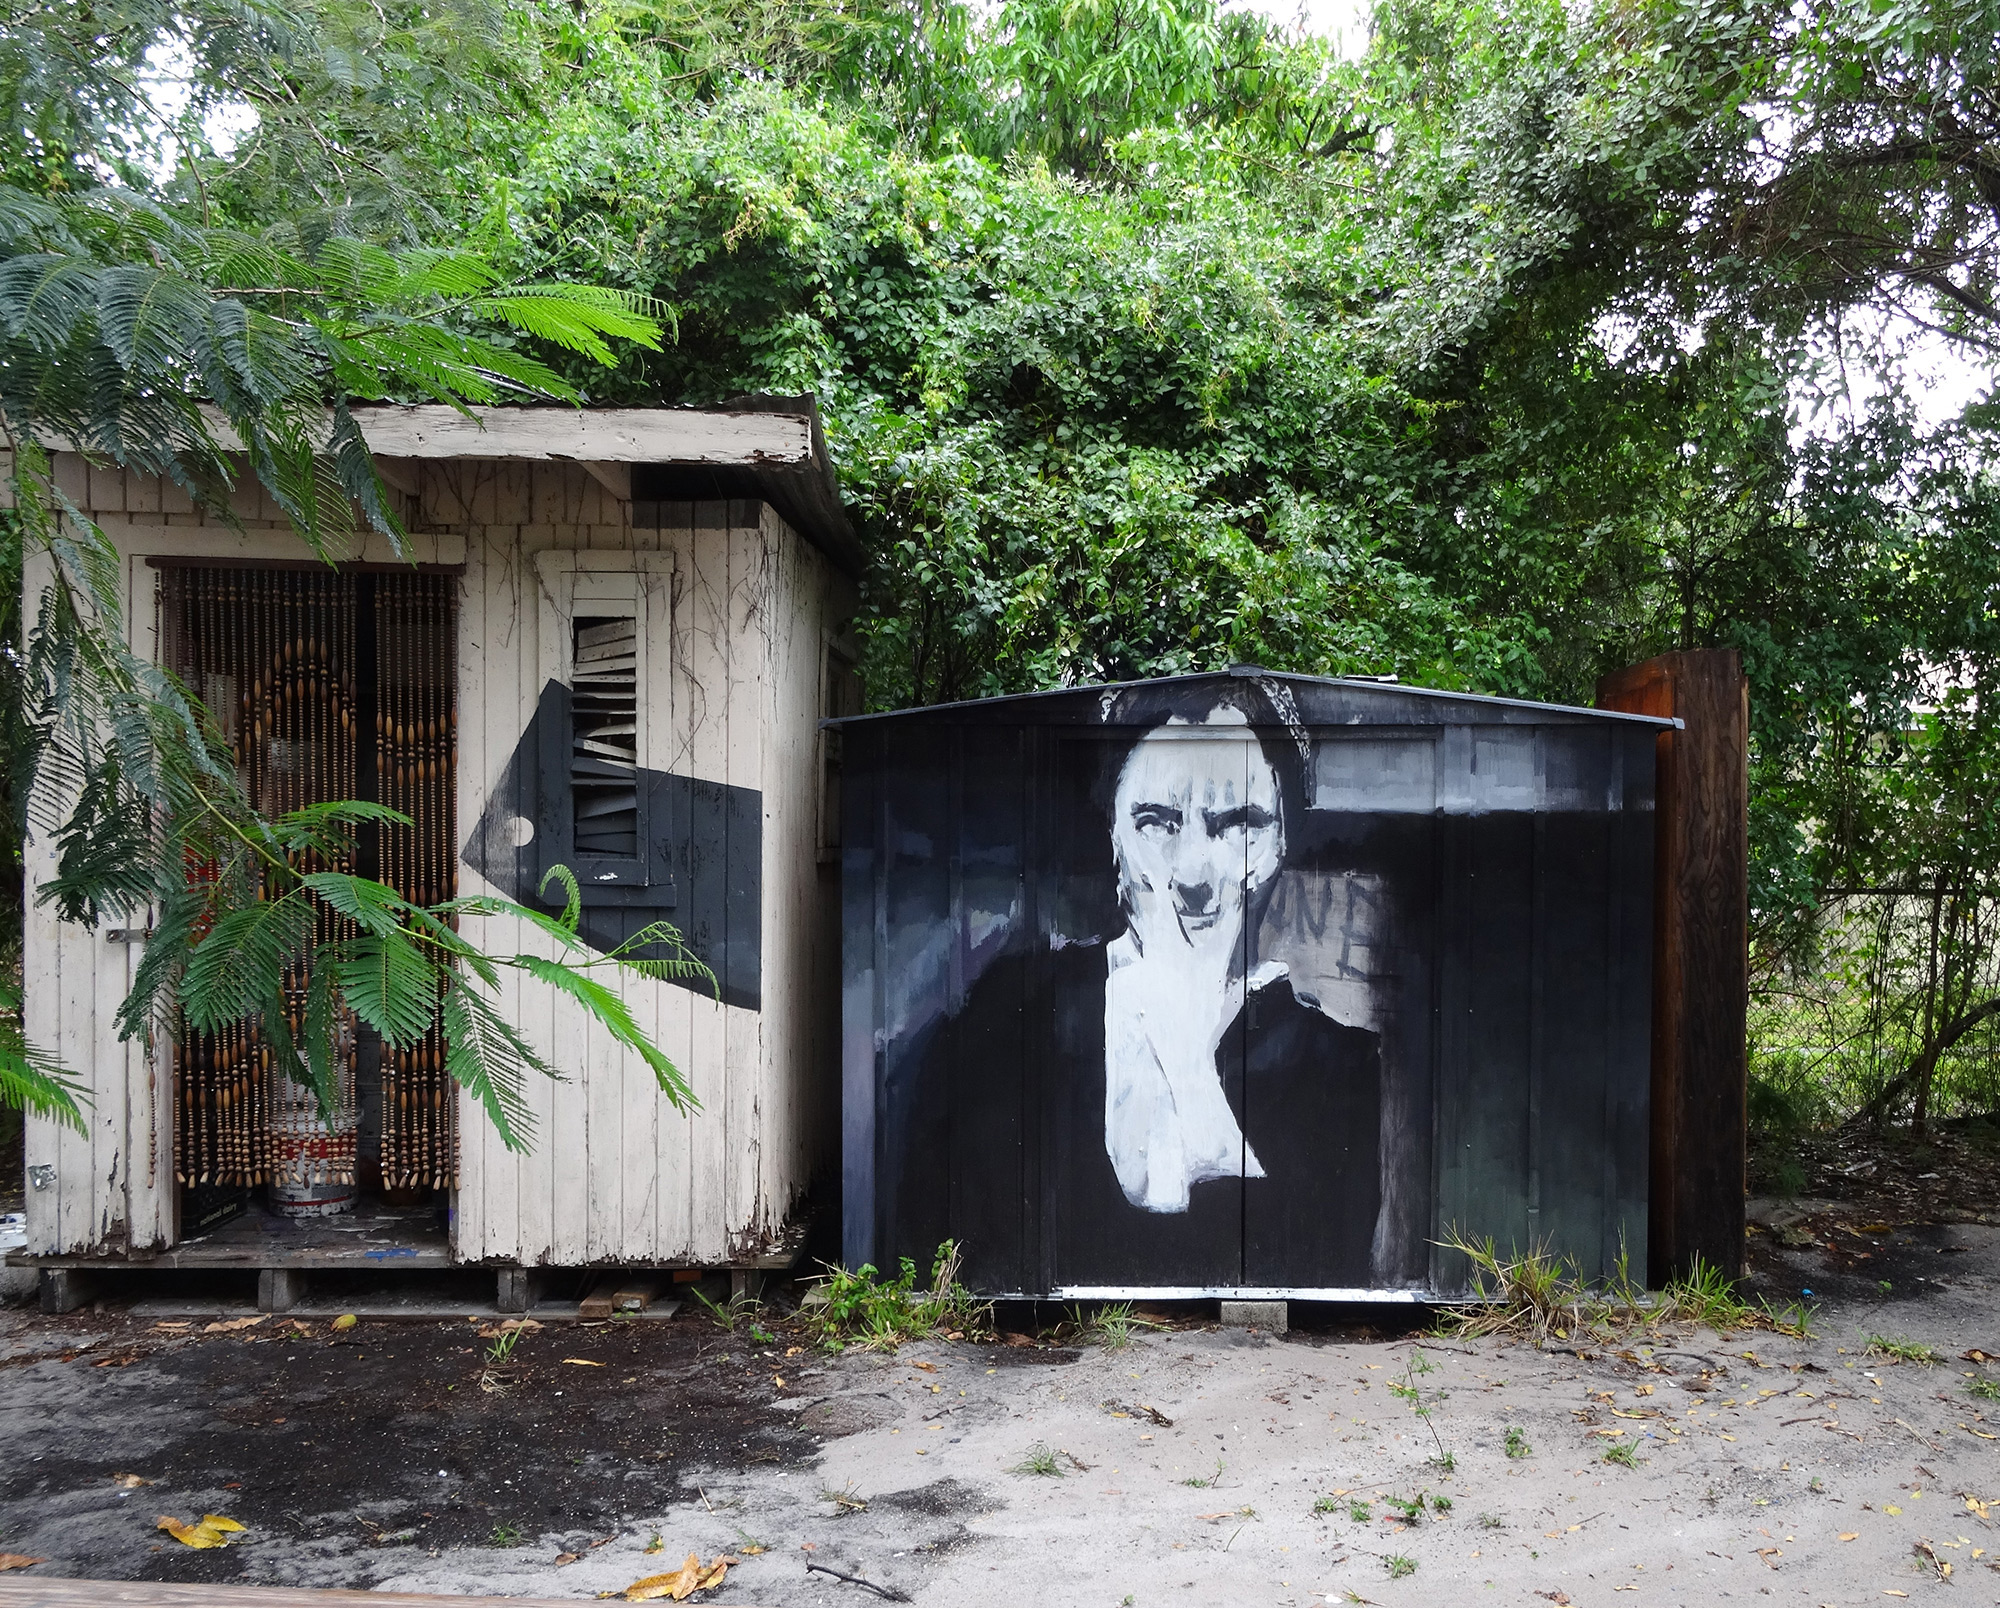 Home MuralFest: 67 Artists Simultaneously Painted Murals in Their Homes and Gardens While Quarantined